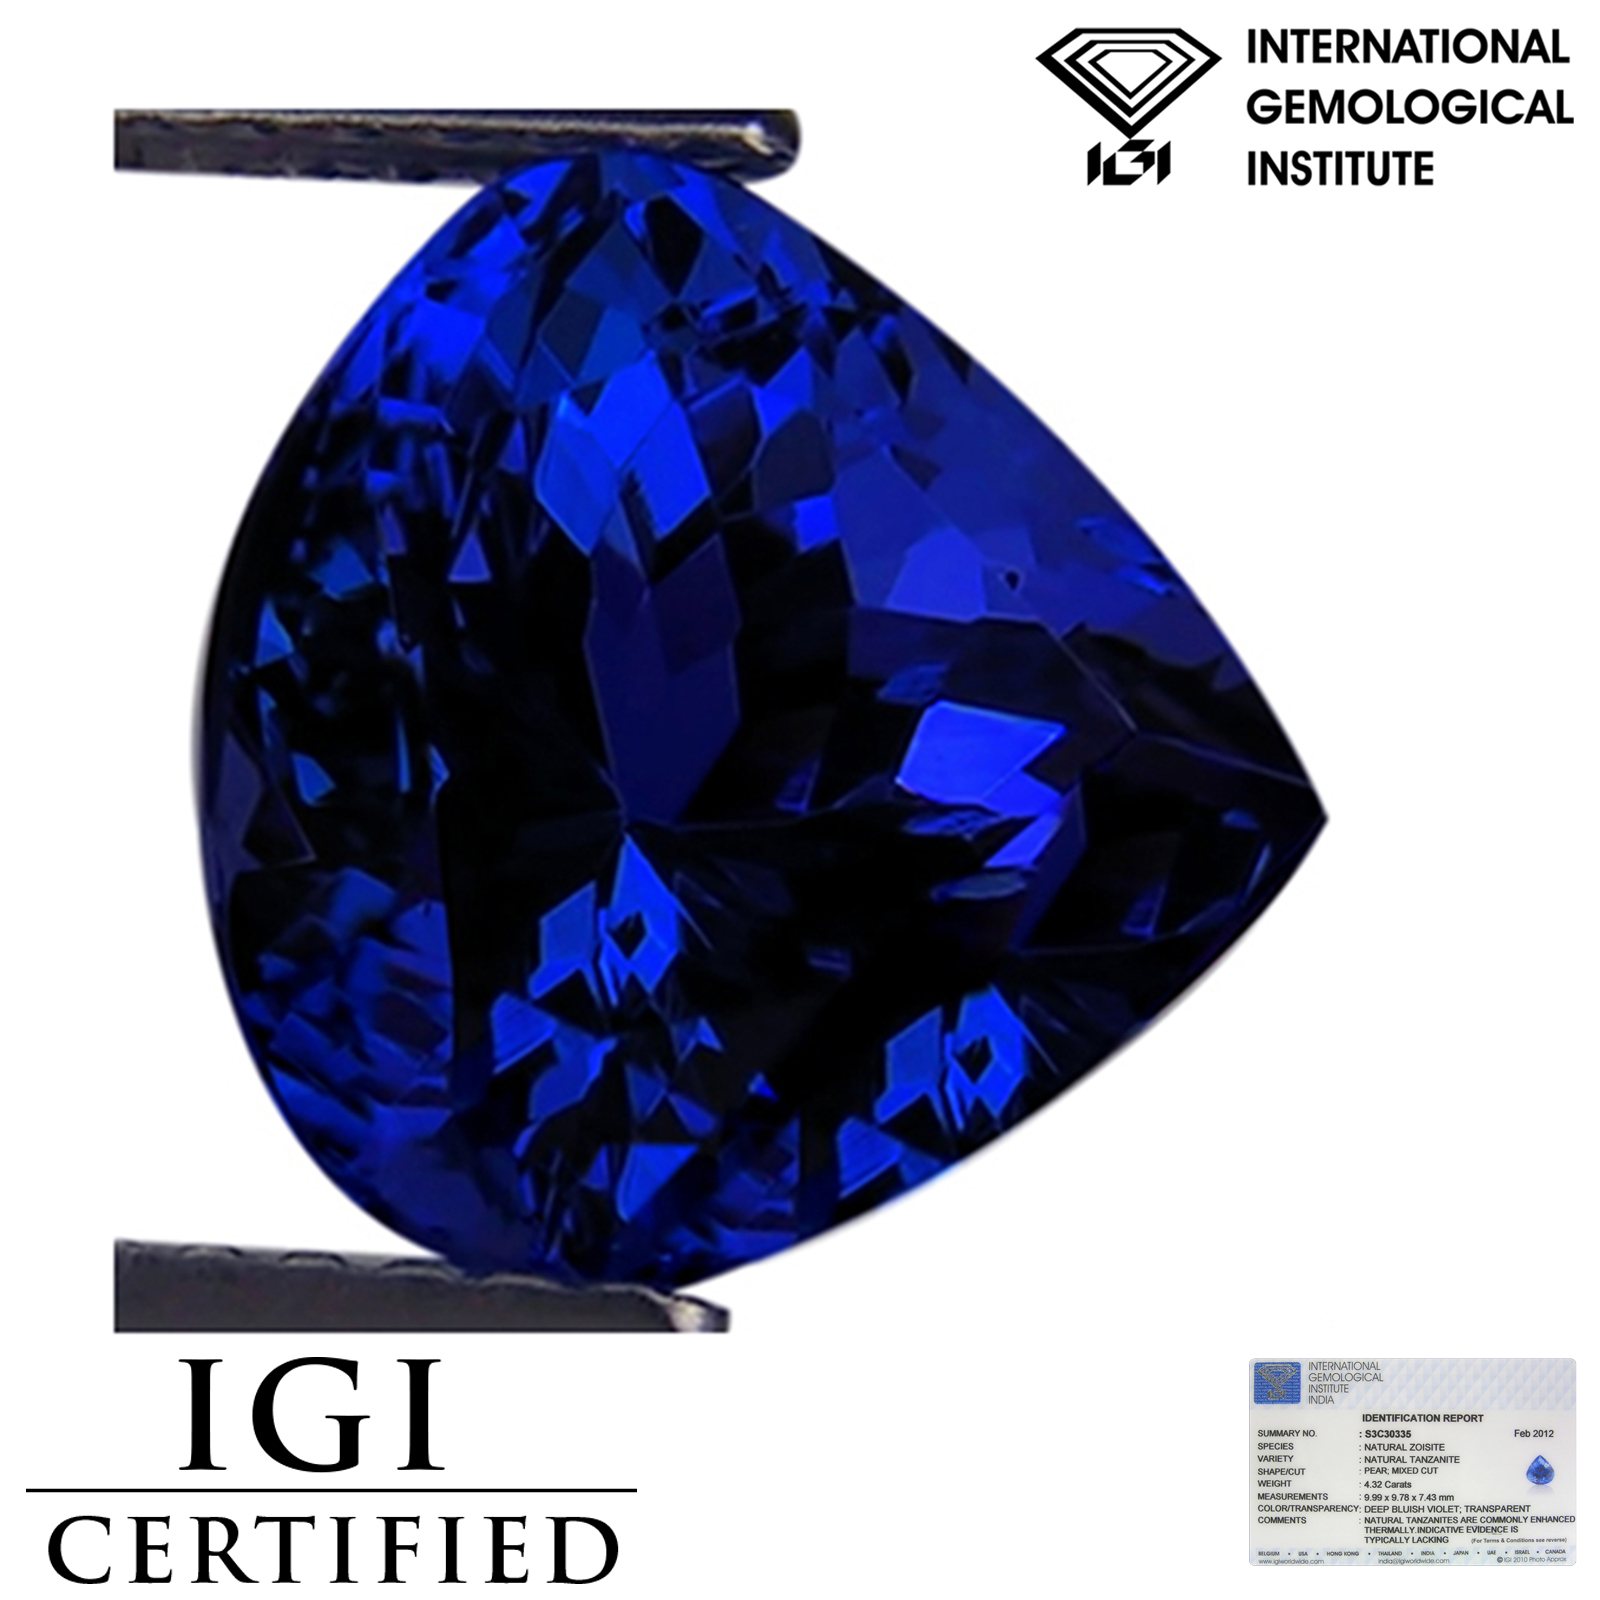 loose buy detailed cut gemstones detail cubic zirconia gems images tanzanite of product bulk marquise